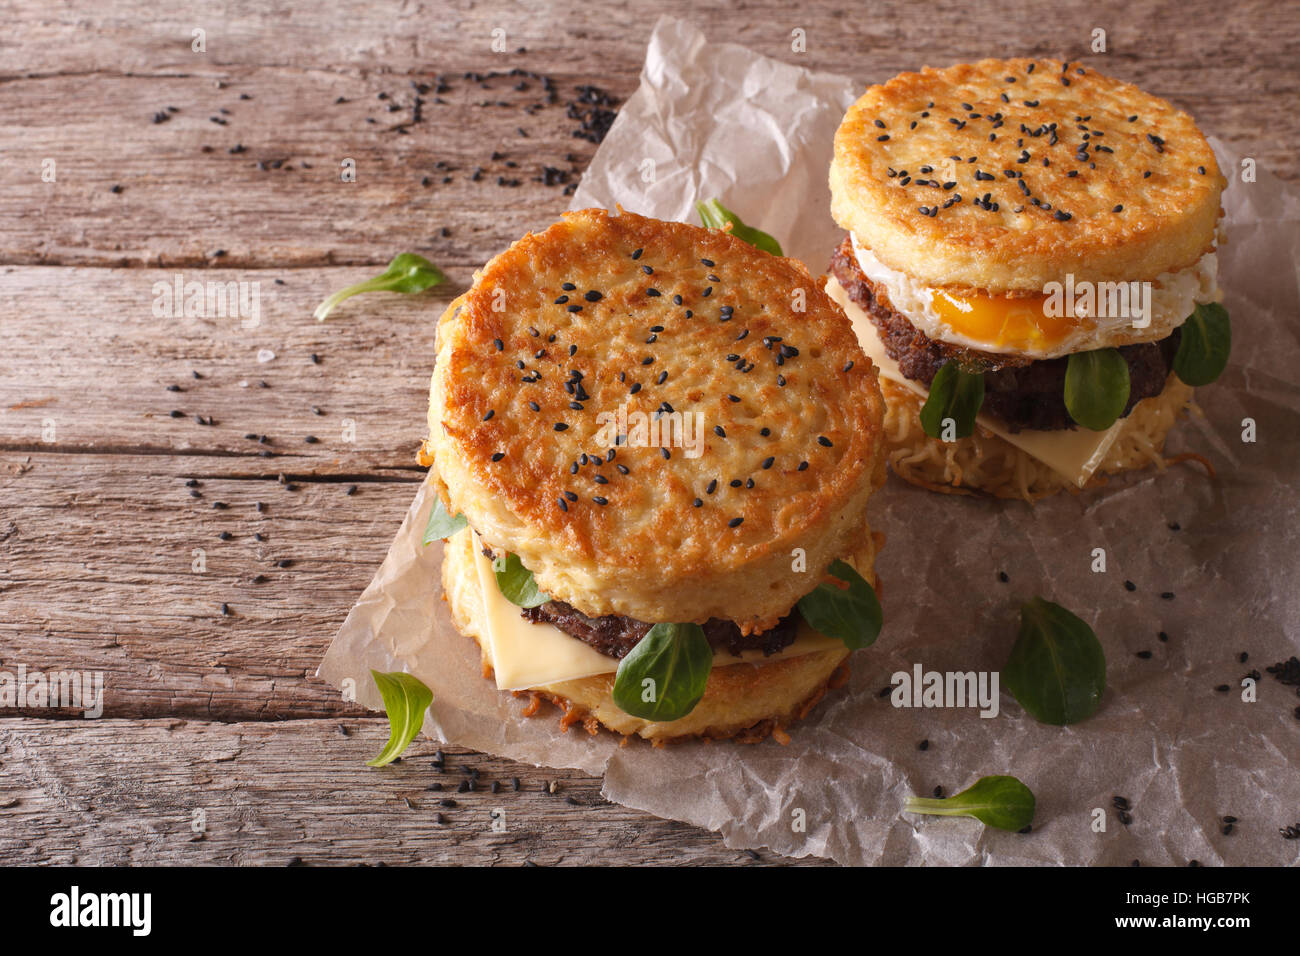 Ramen burgers with beef and egg on a paper on a wooden table closeup. Horizontal - Stock Image